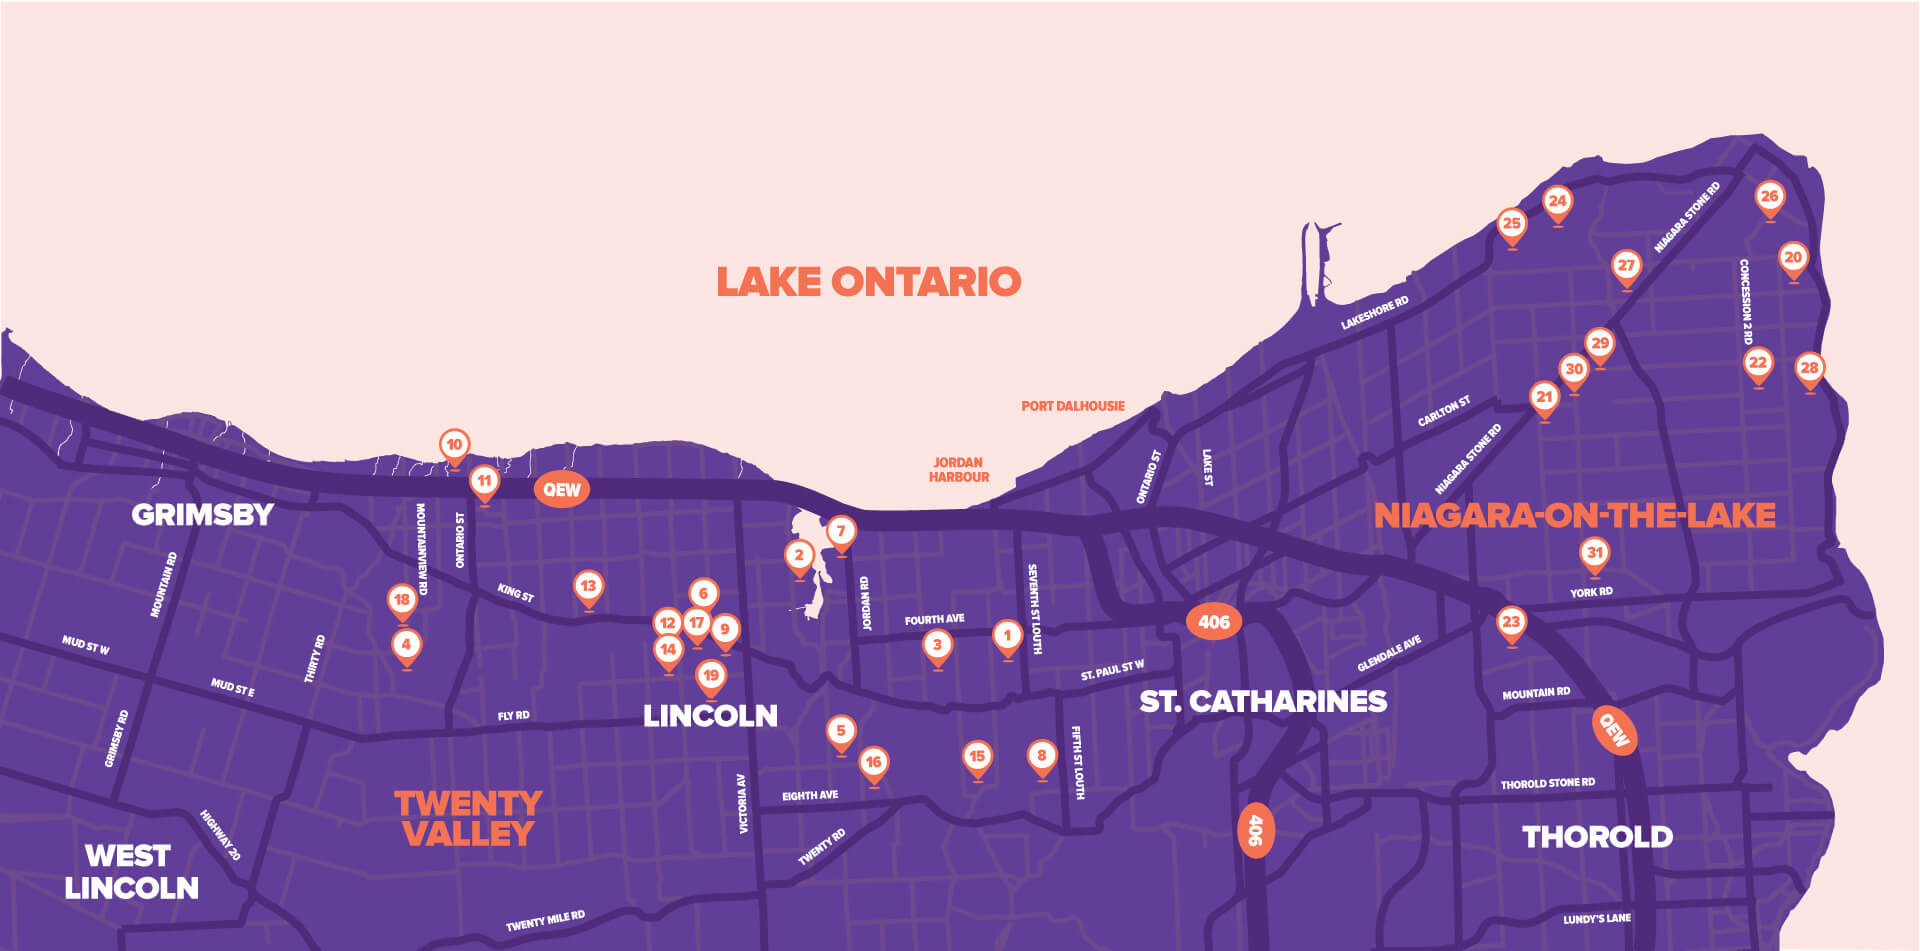 Niagara Grape & Wine Festival - Discovery Pass Map